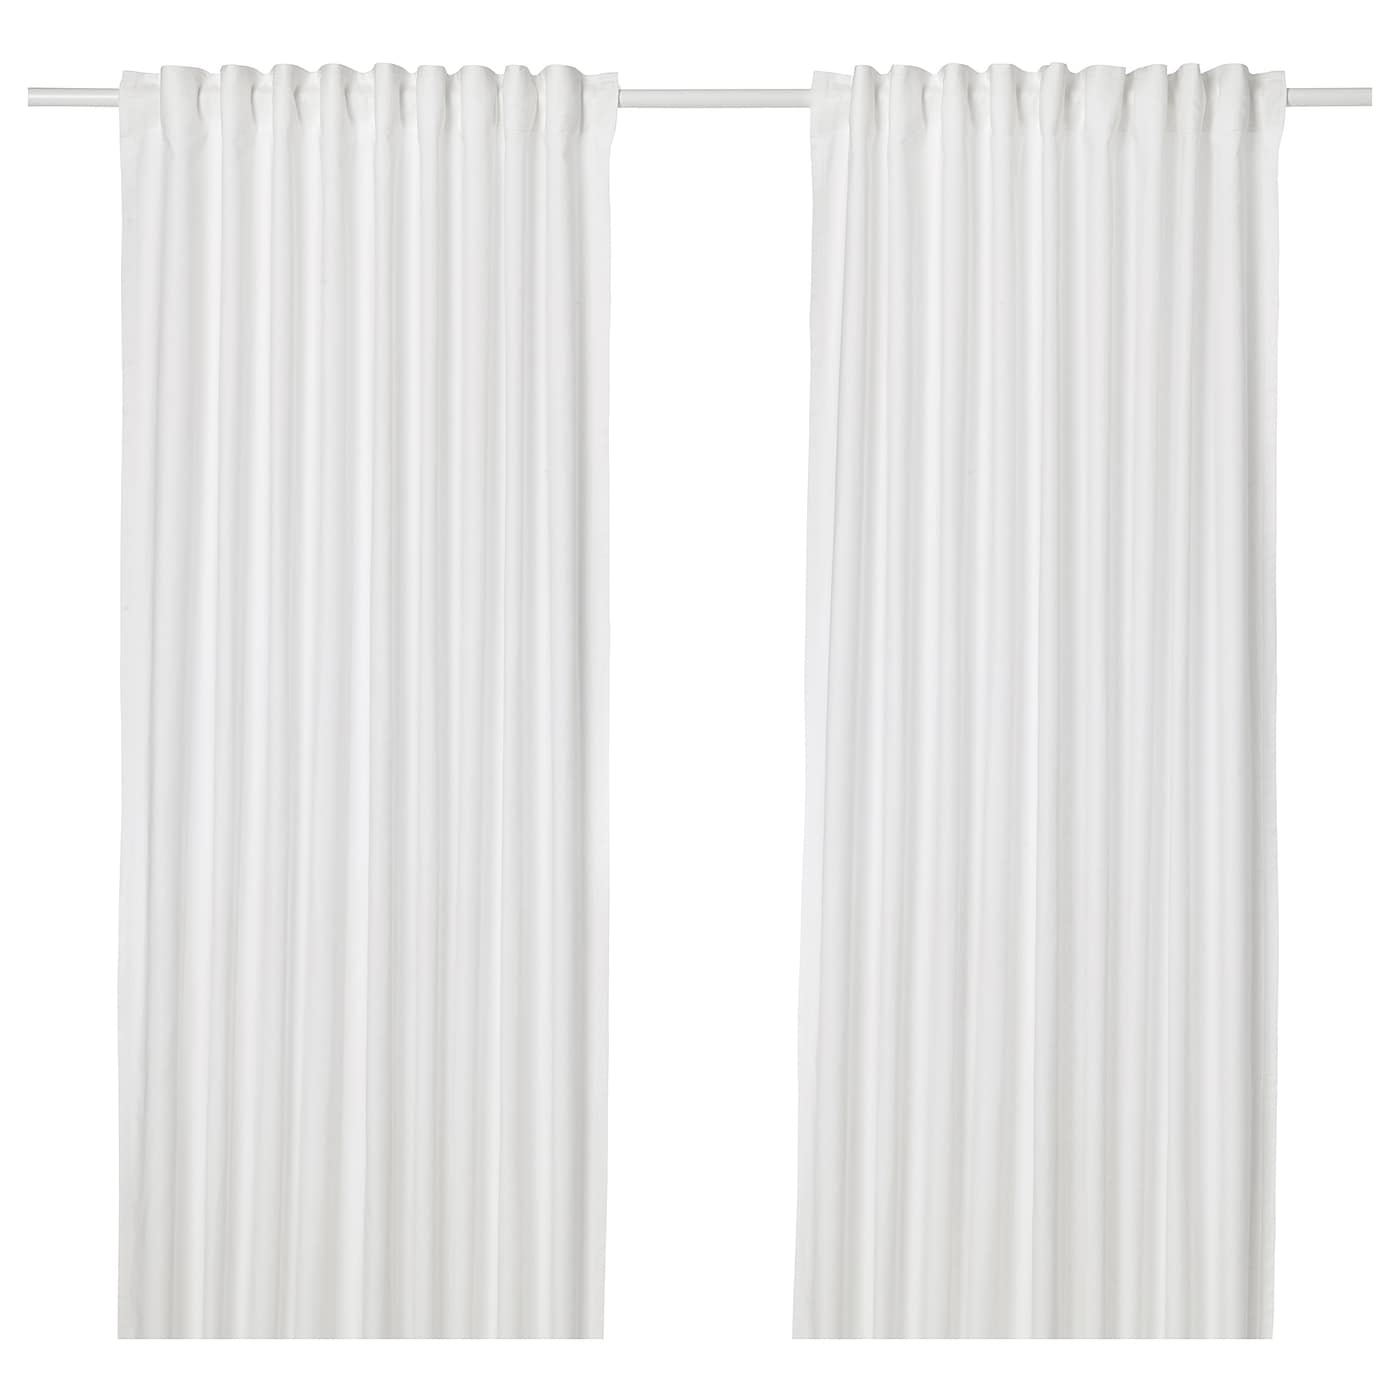 Ikea Annalouisa Curtains 1 Pair The Can Be Used On A Curtain Rod Or